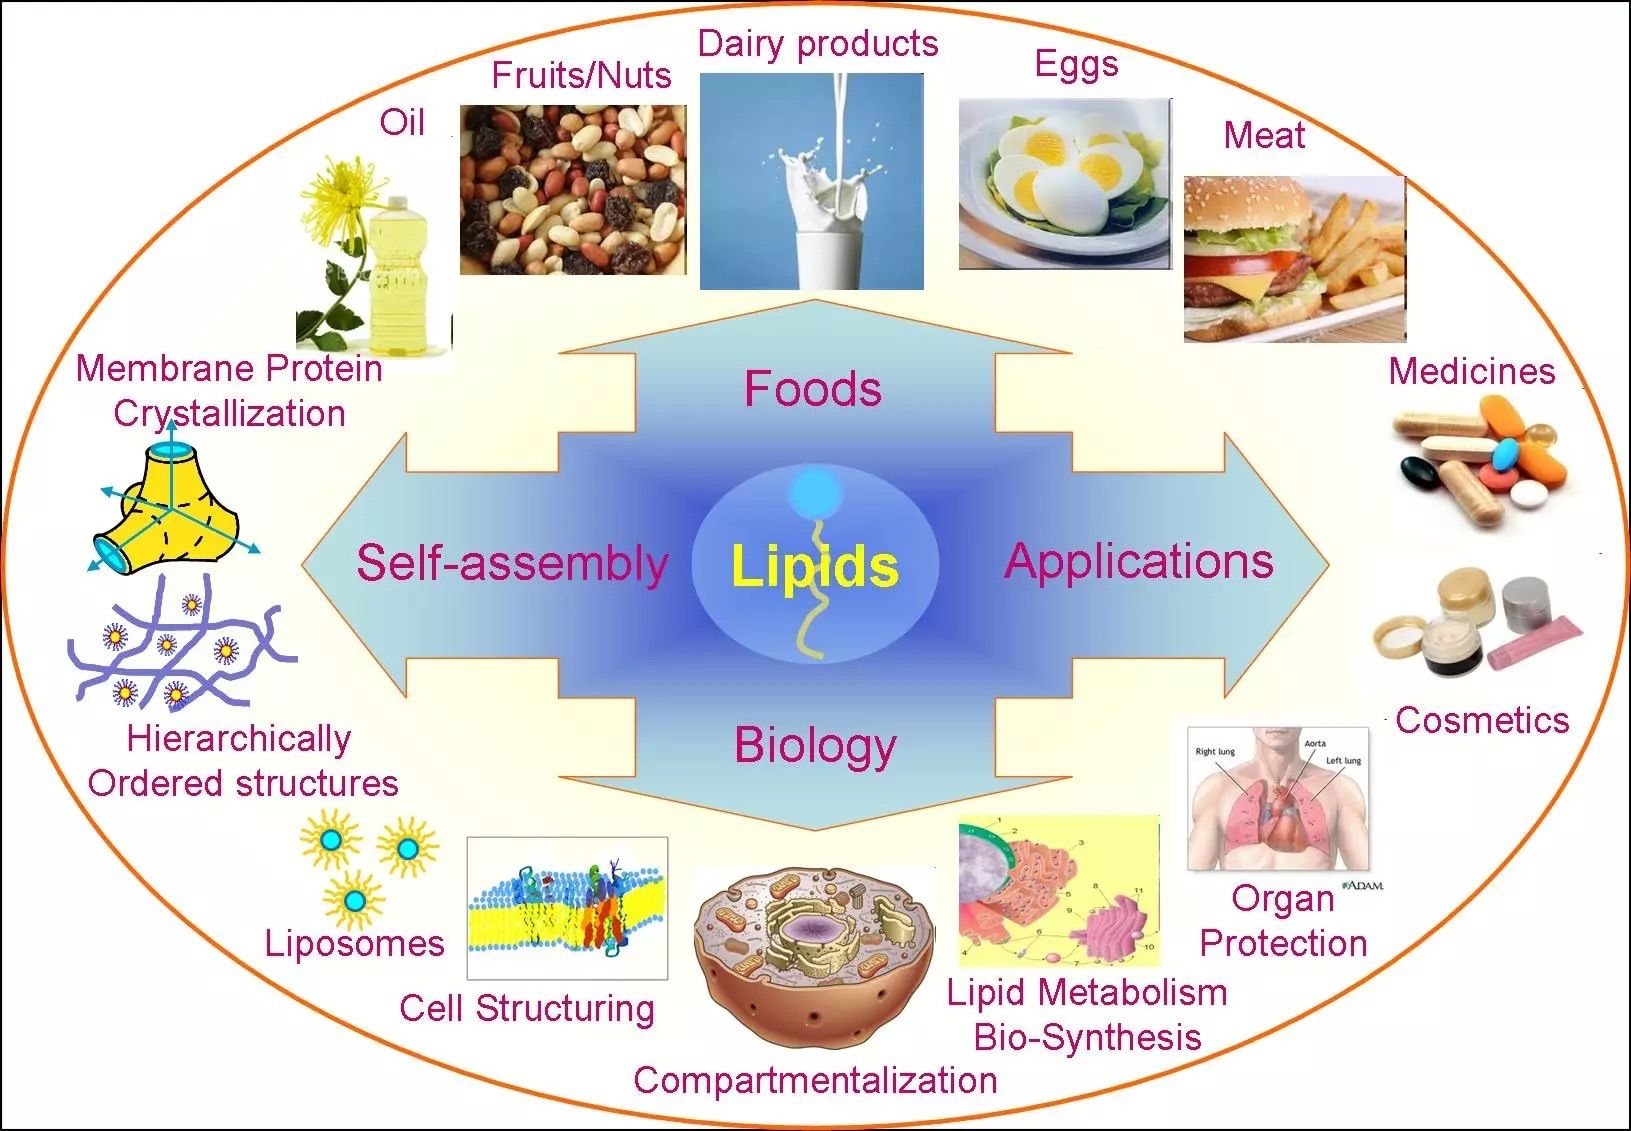 examples of lipids: many items, like dairy products and medicines